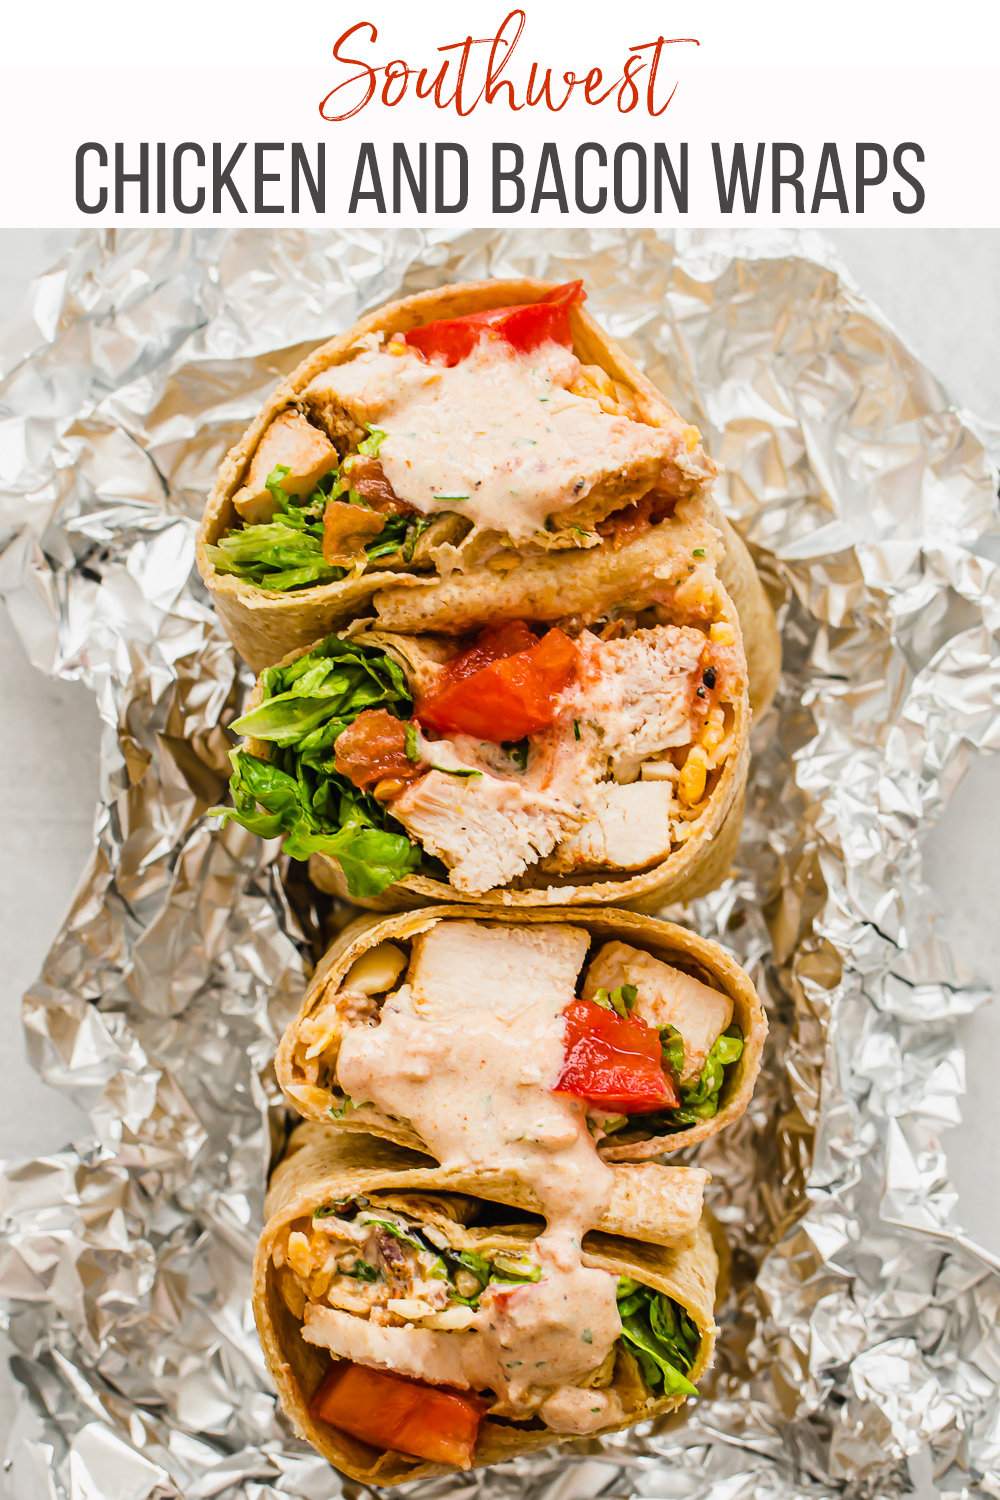 Meal for groups of people: Southwest chicken and bacon wraps